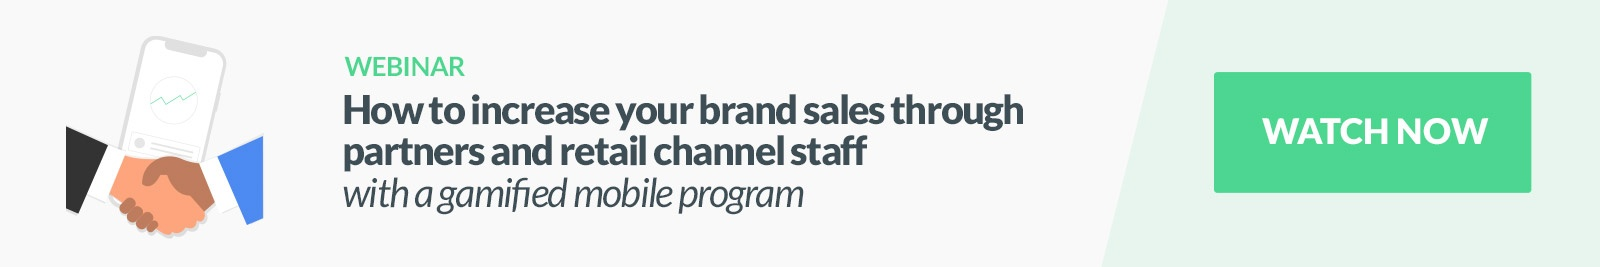 how - to - increase - brand - sales - partners - retail - channel - staff - gamified - mobile program